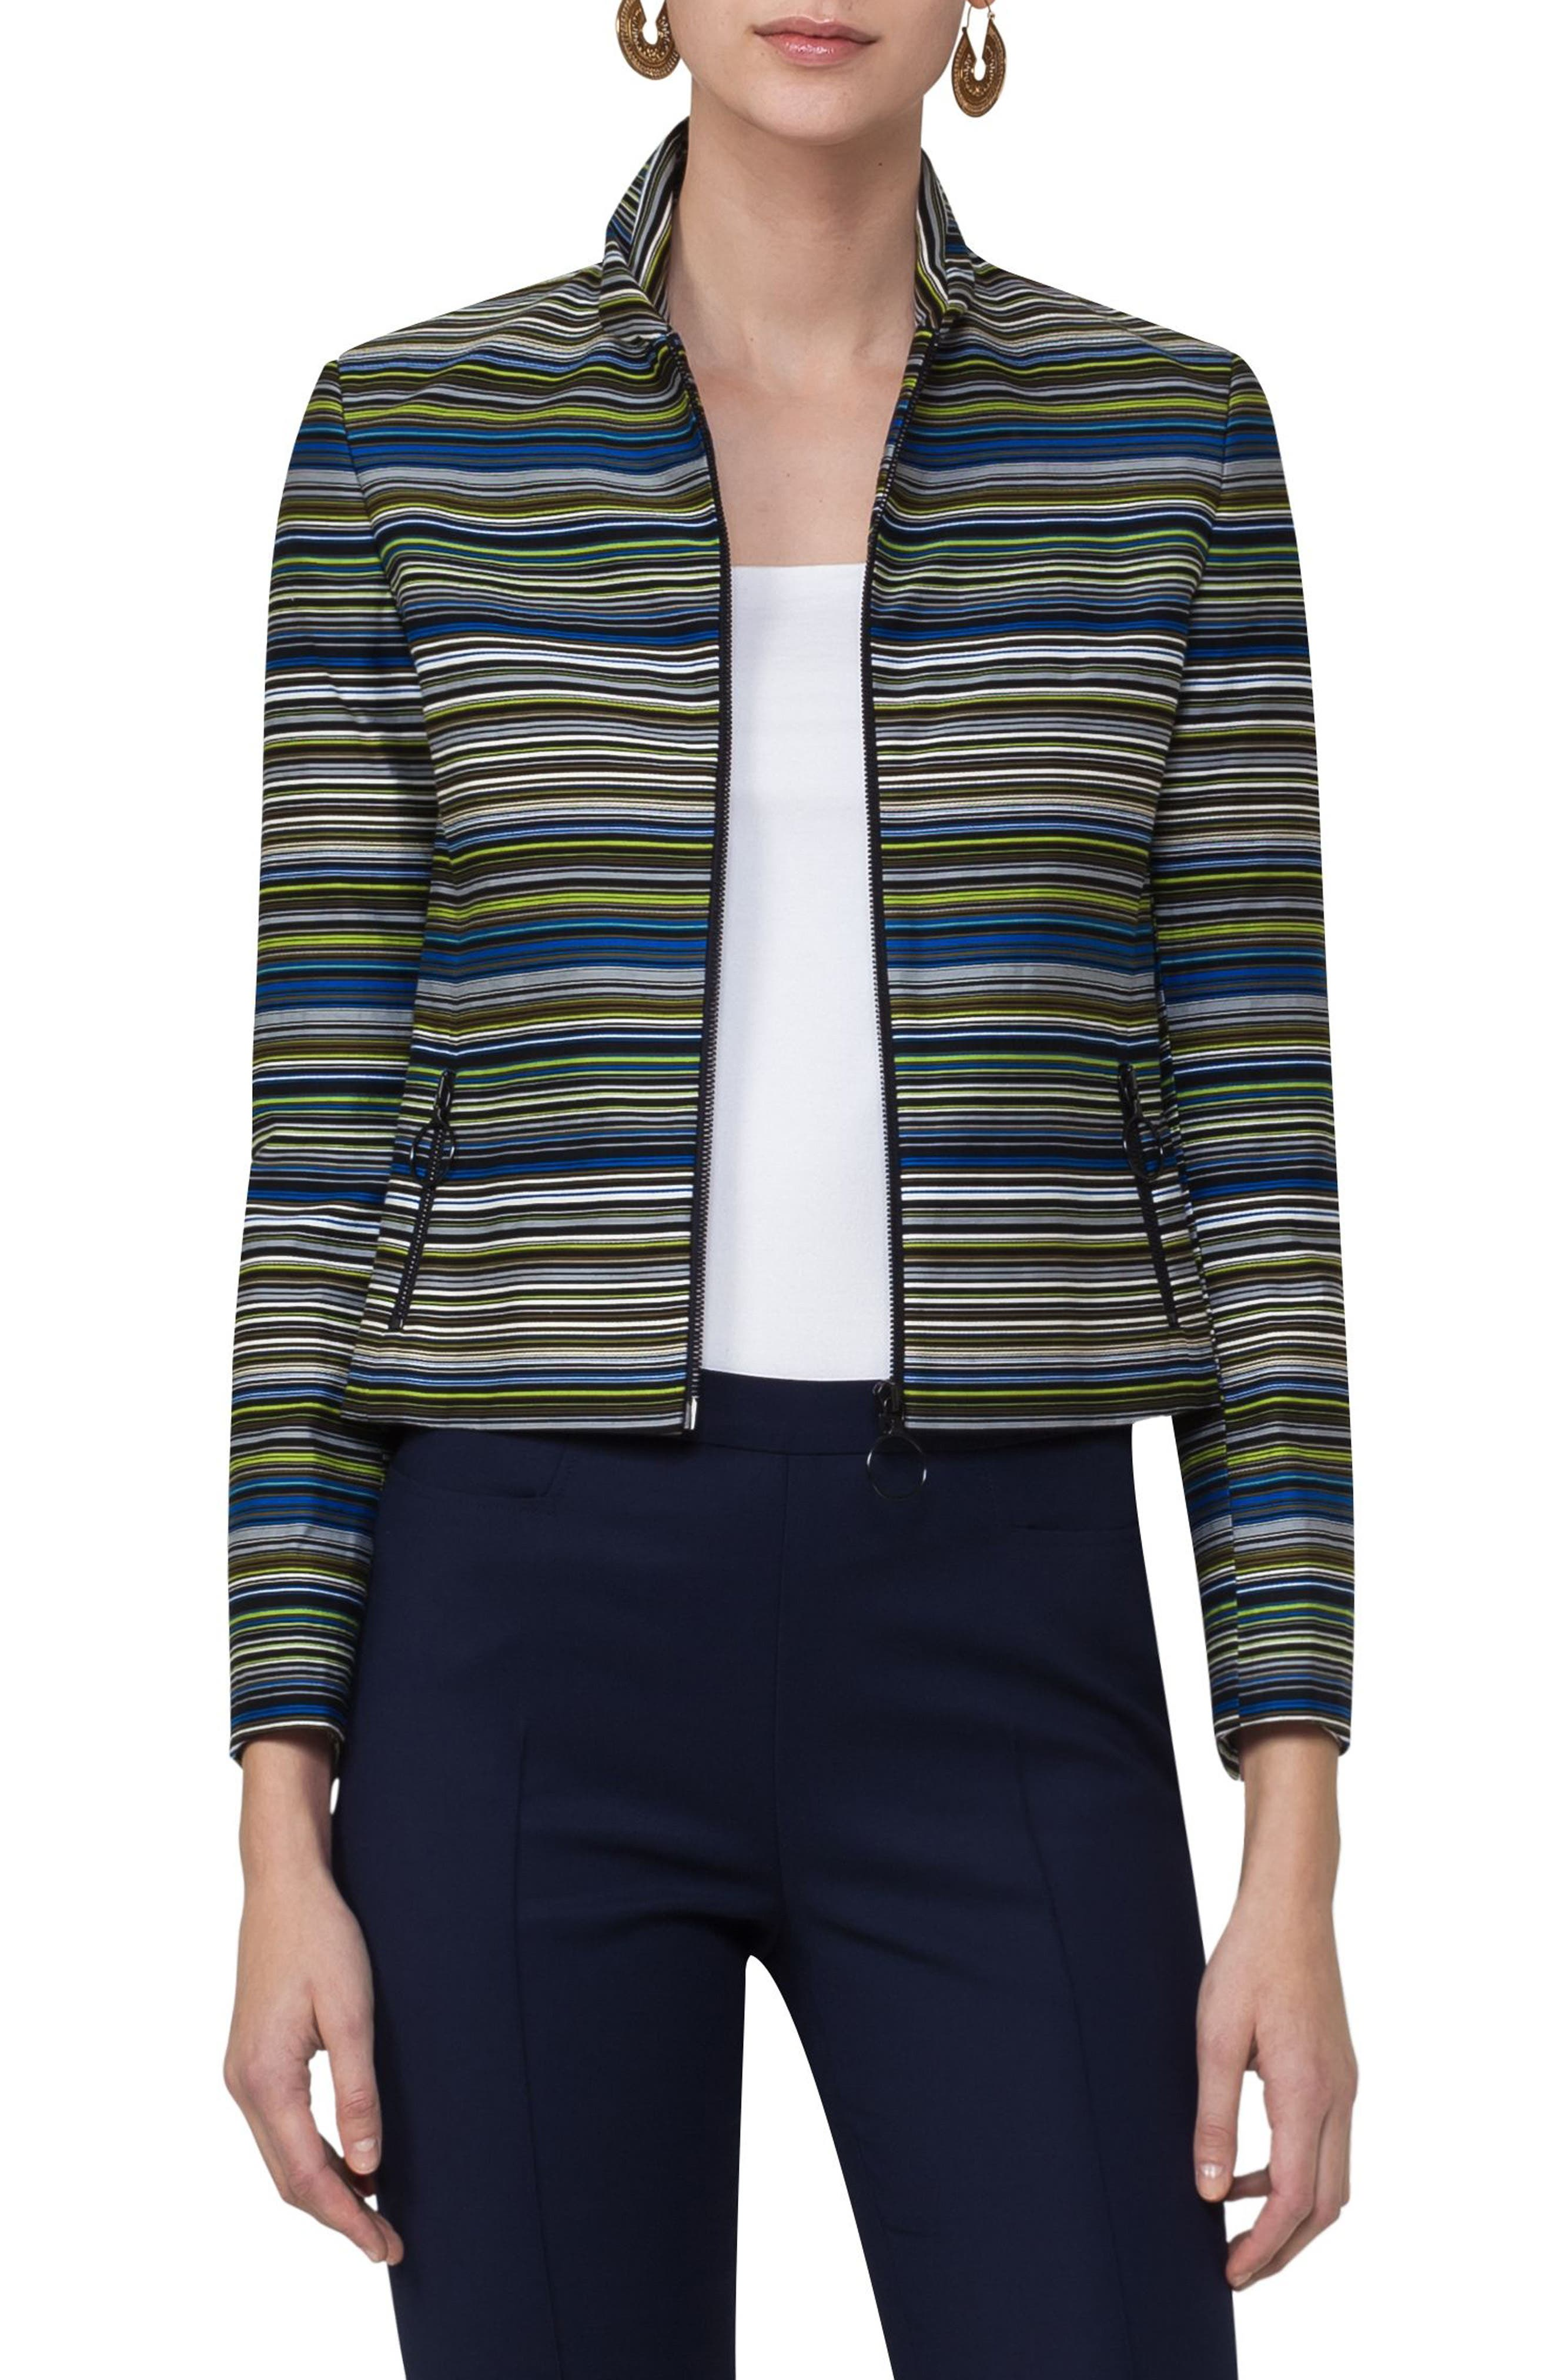 Paracas Stripe Crop Jacket,                         Main,                         color, Forest Multi